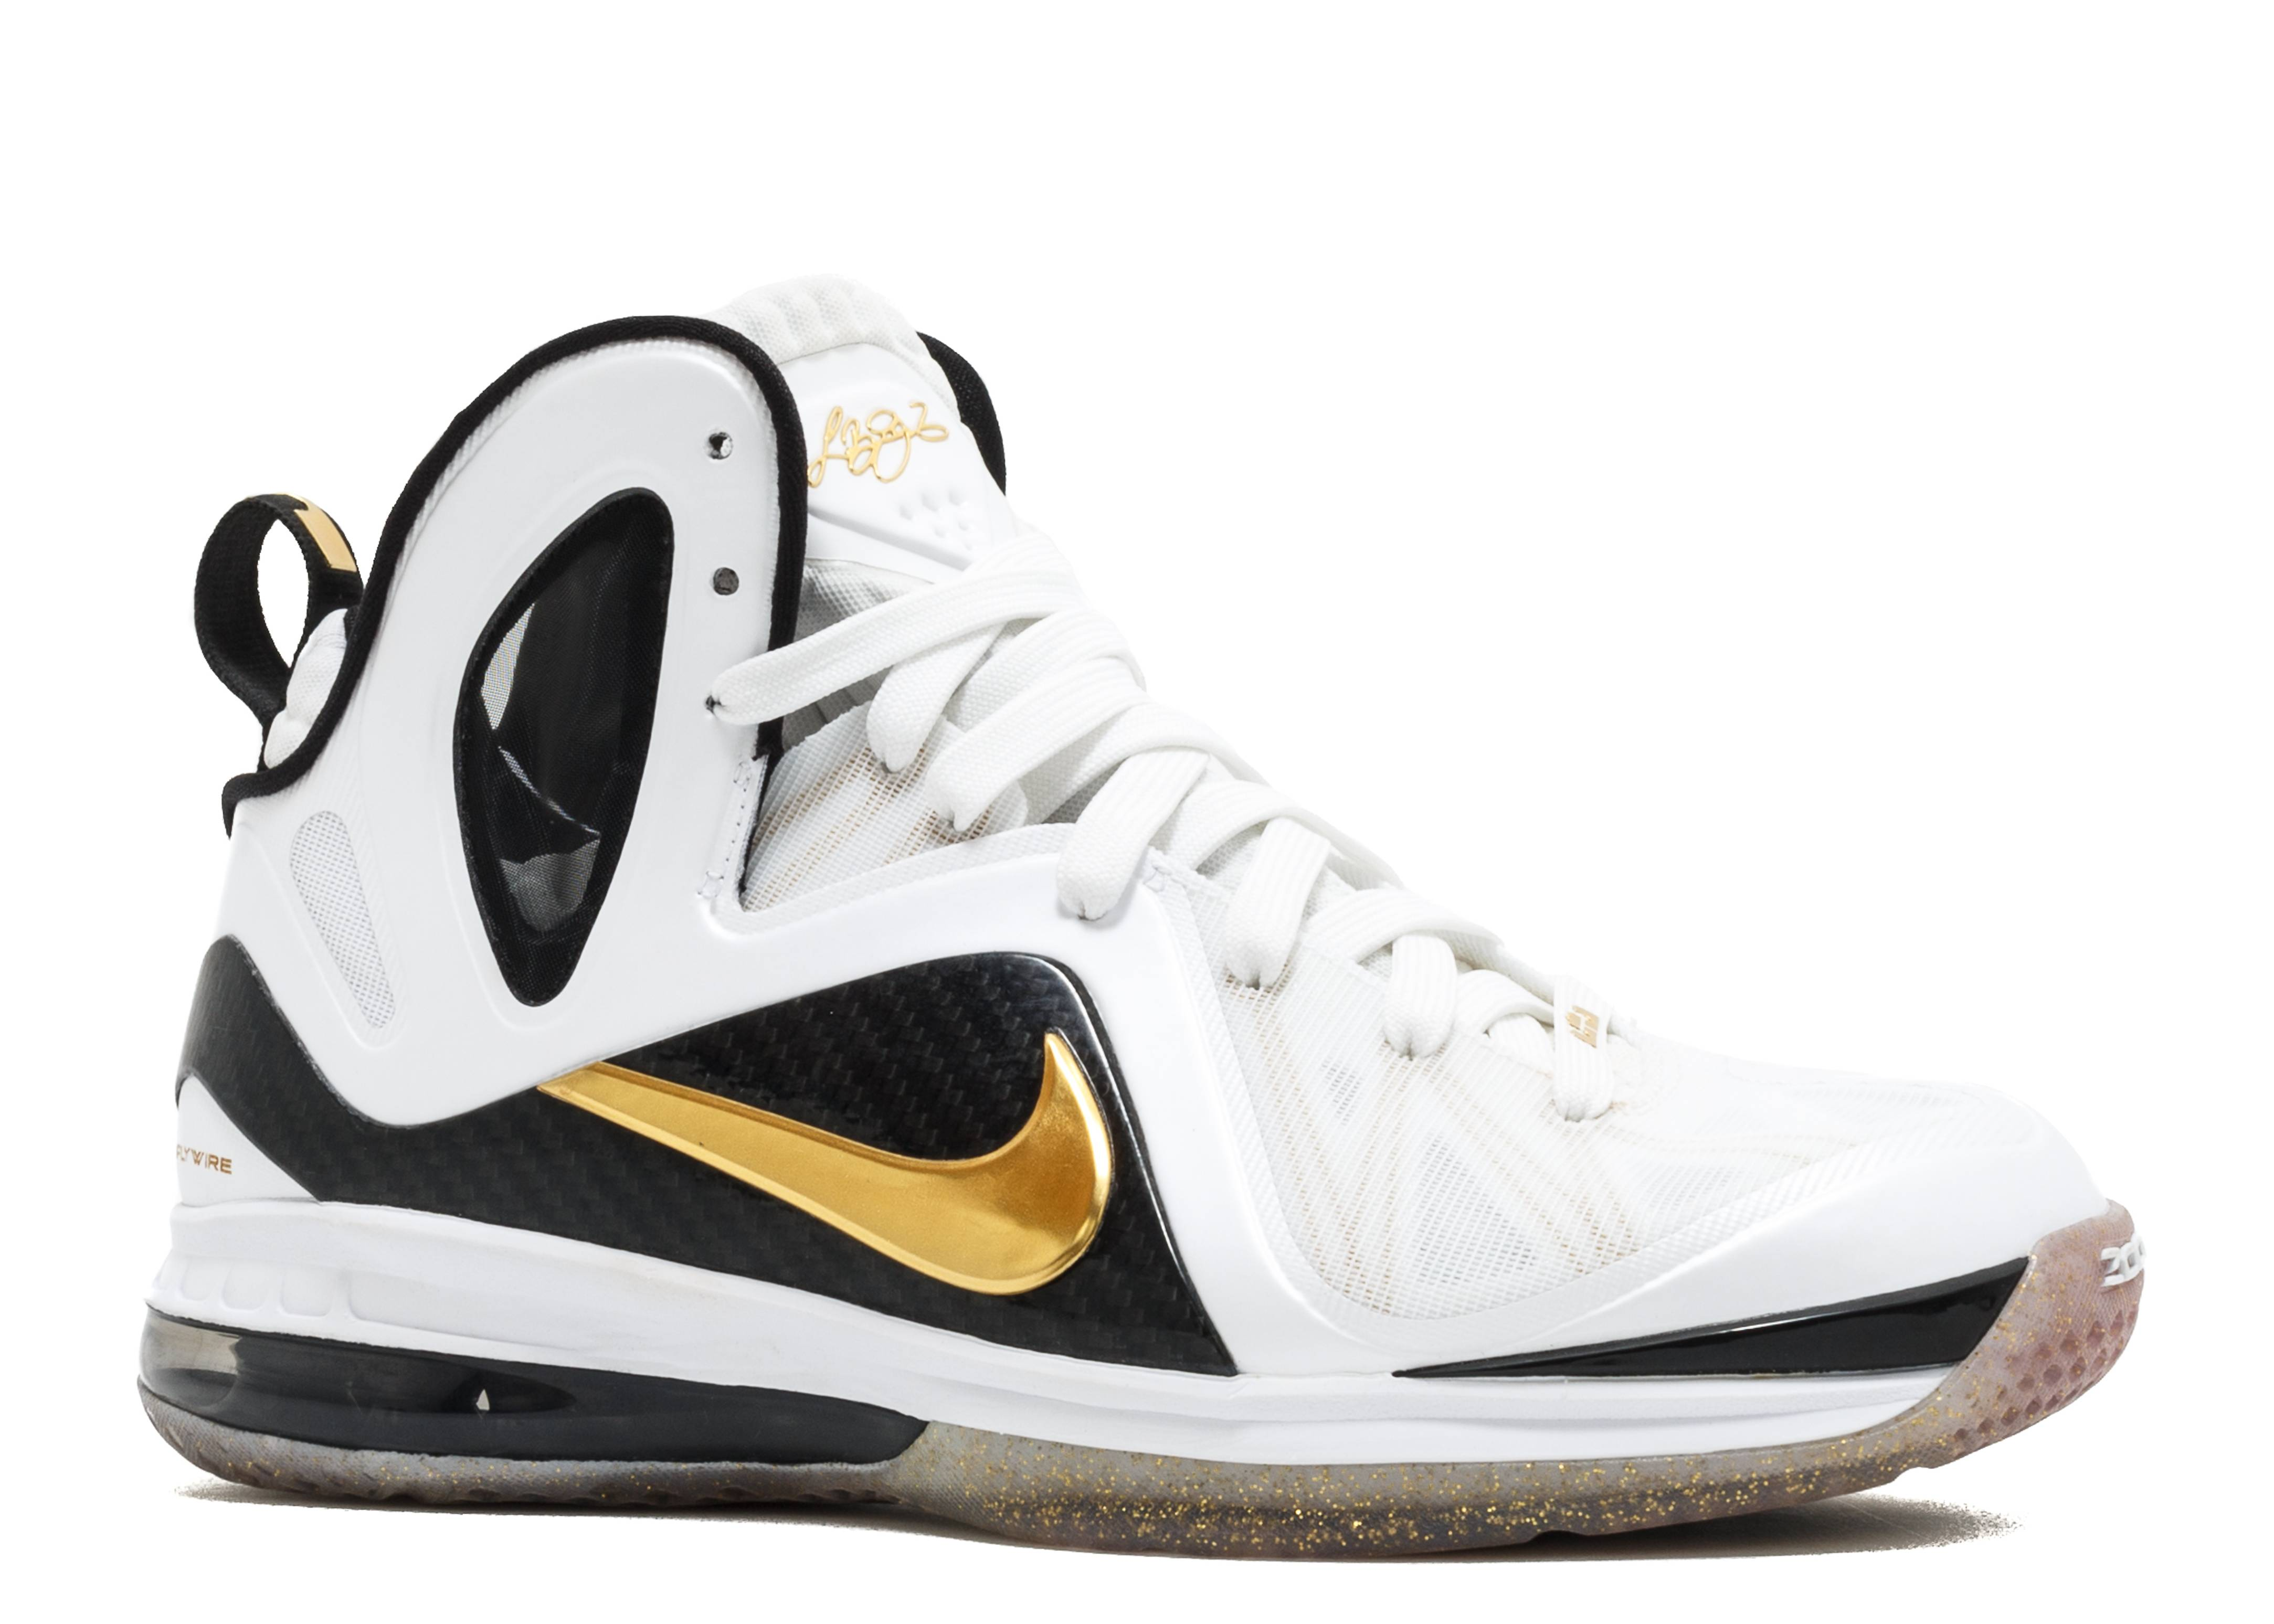 """Lebron 9 Ps Elite """"home""""  Nike  516958 100  White. Bedroom Decor Signs Of Stroke. Game Throne Signs. Glock Signs Of Stroke. Hindi Signs Of Stroke. Electrical Equipment Signs Of Stroke. Carotid Signs Of Stroke. Cusp Signs Of Stroke. Milk Signs"""